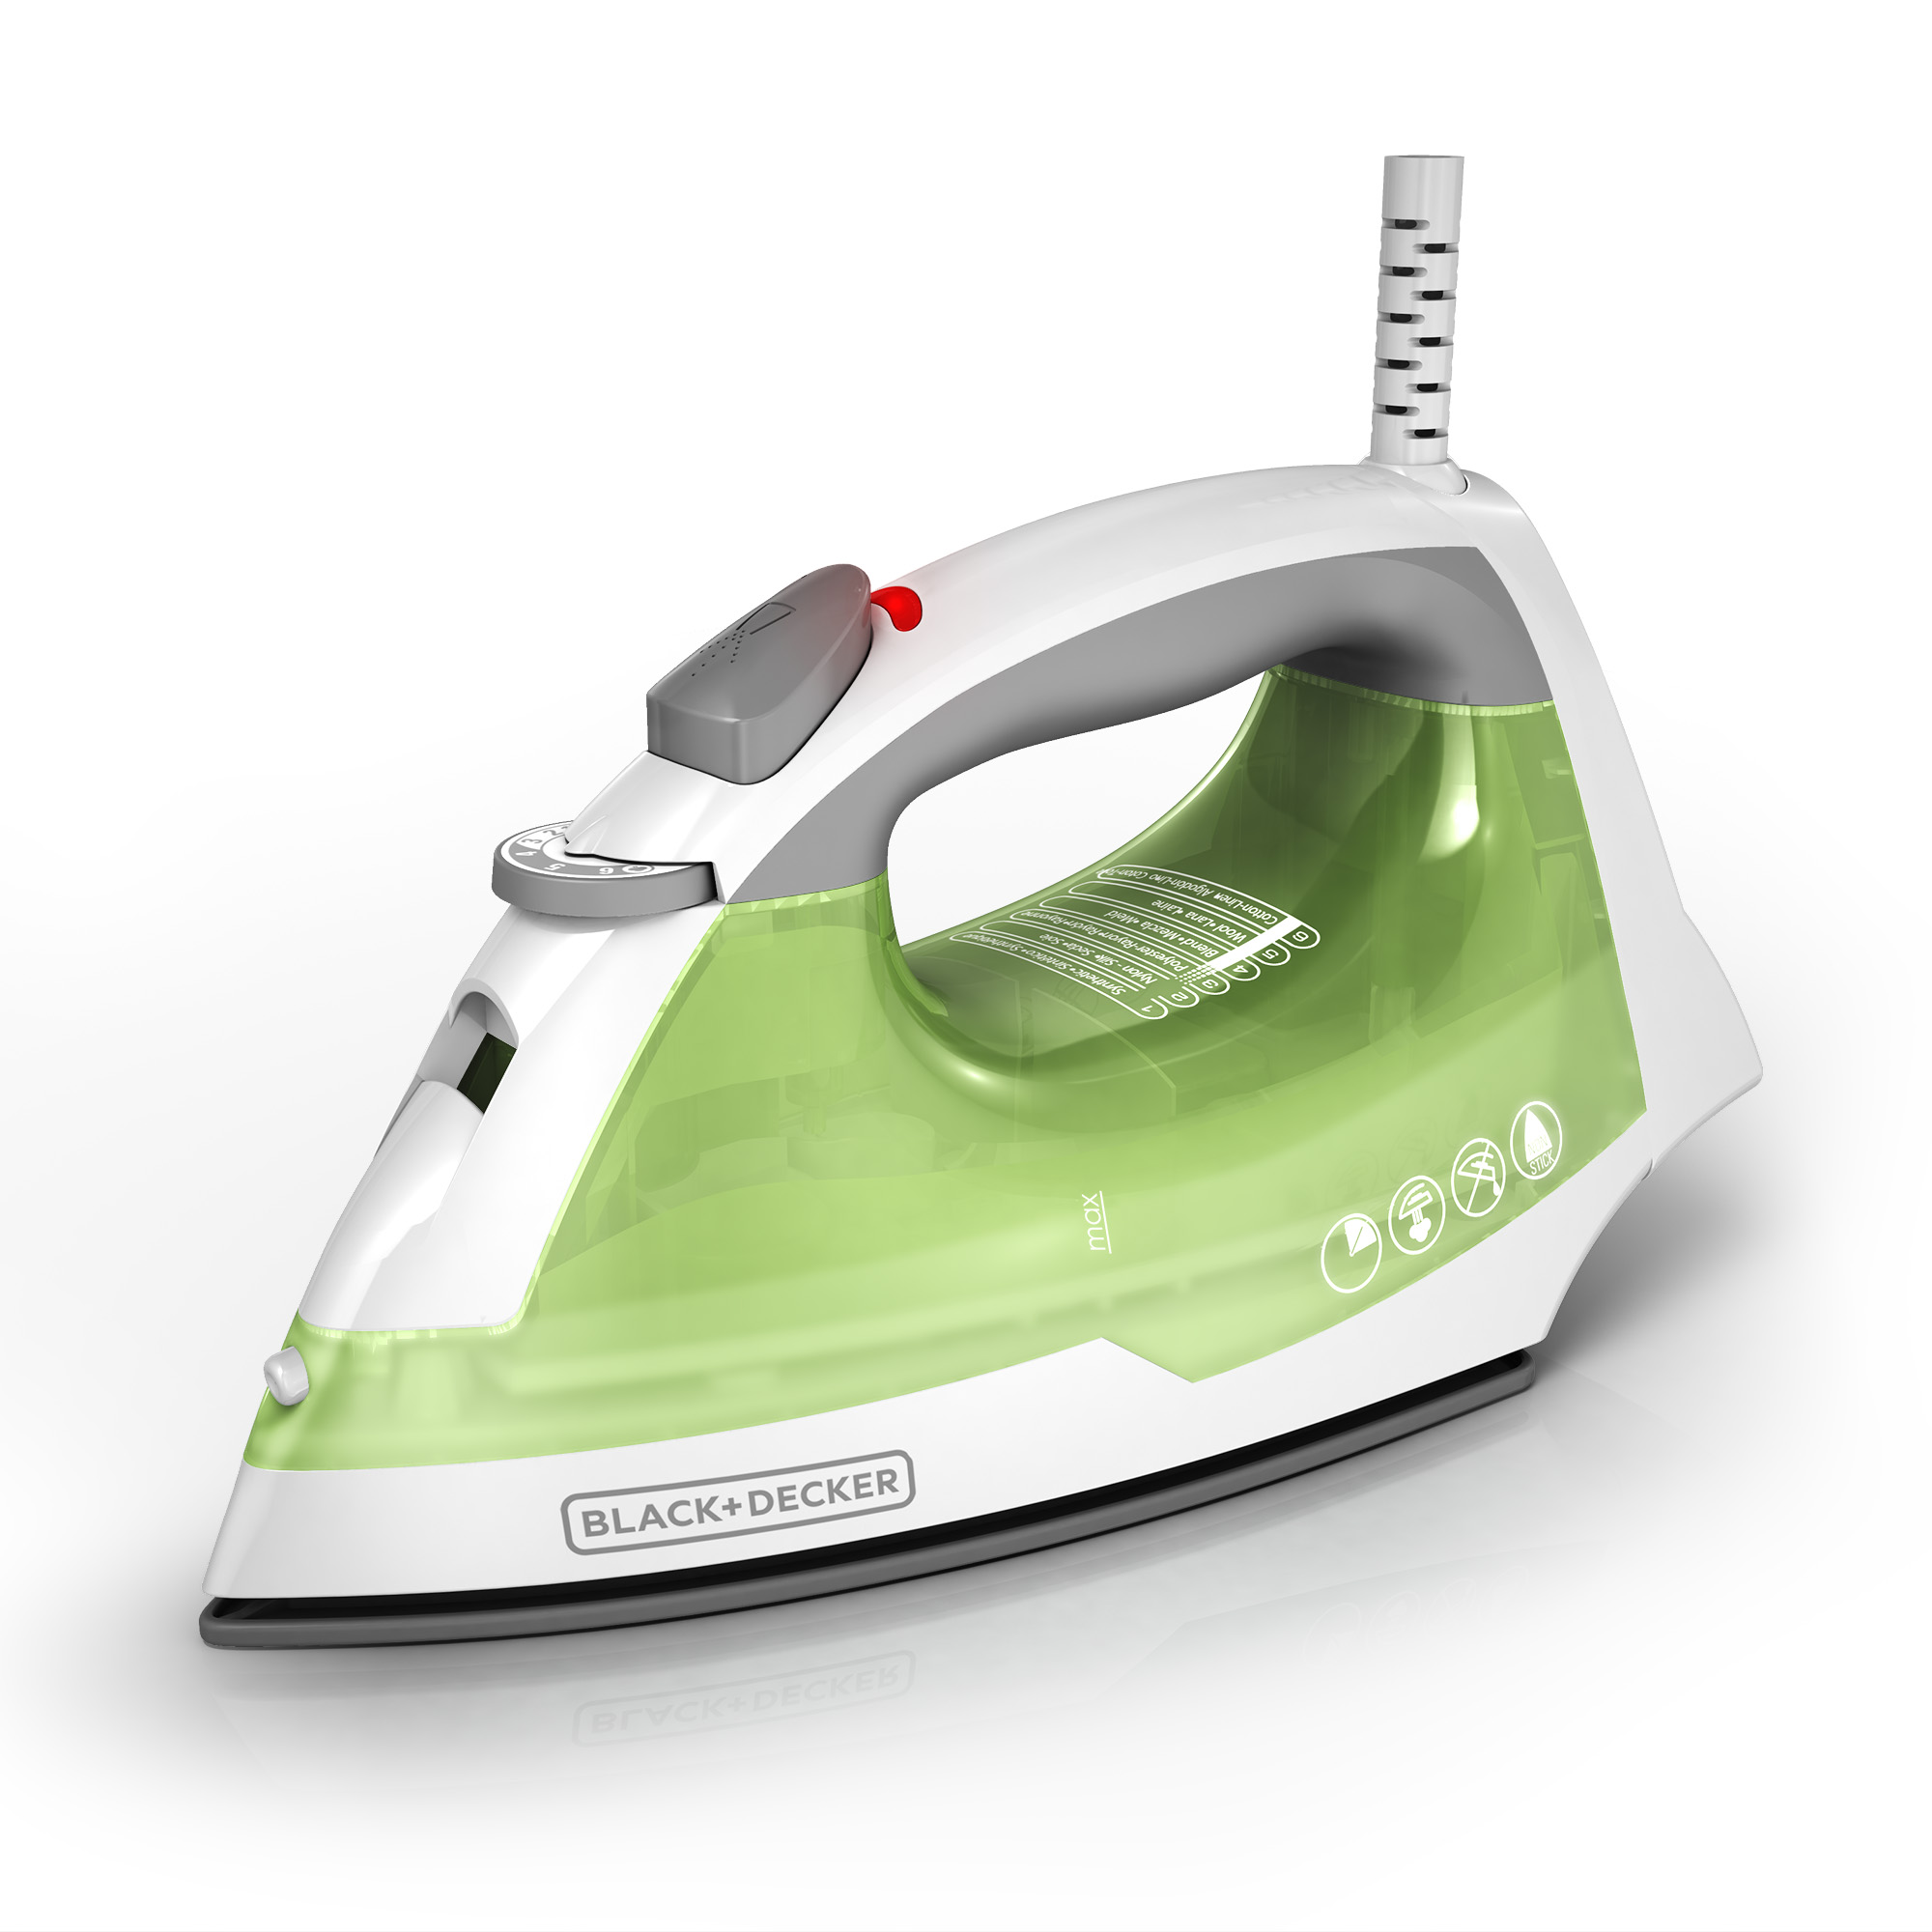 BLACK+DECKER Easy Steam Anti-Drip Compact Steam Iron, Green, IR02V